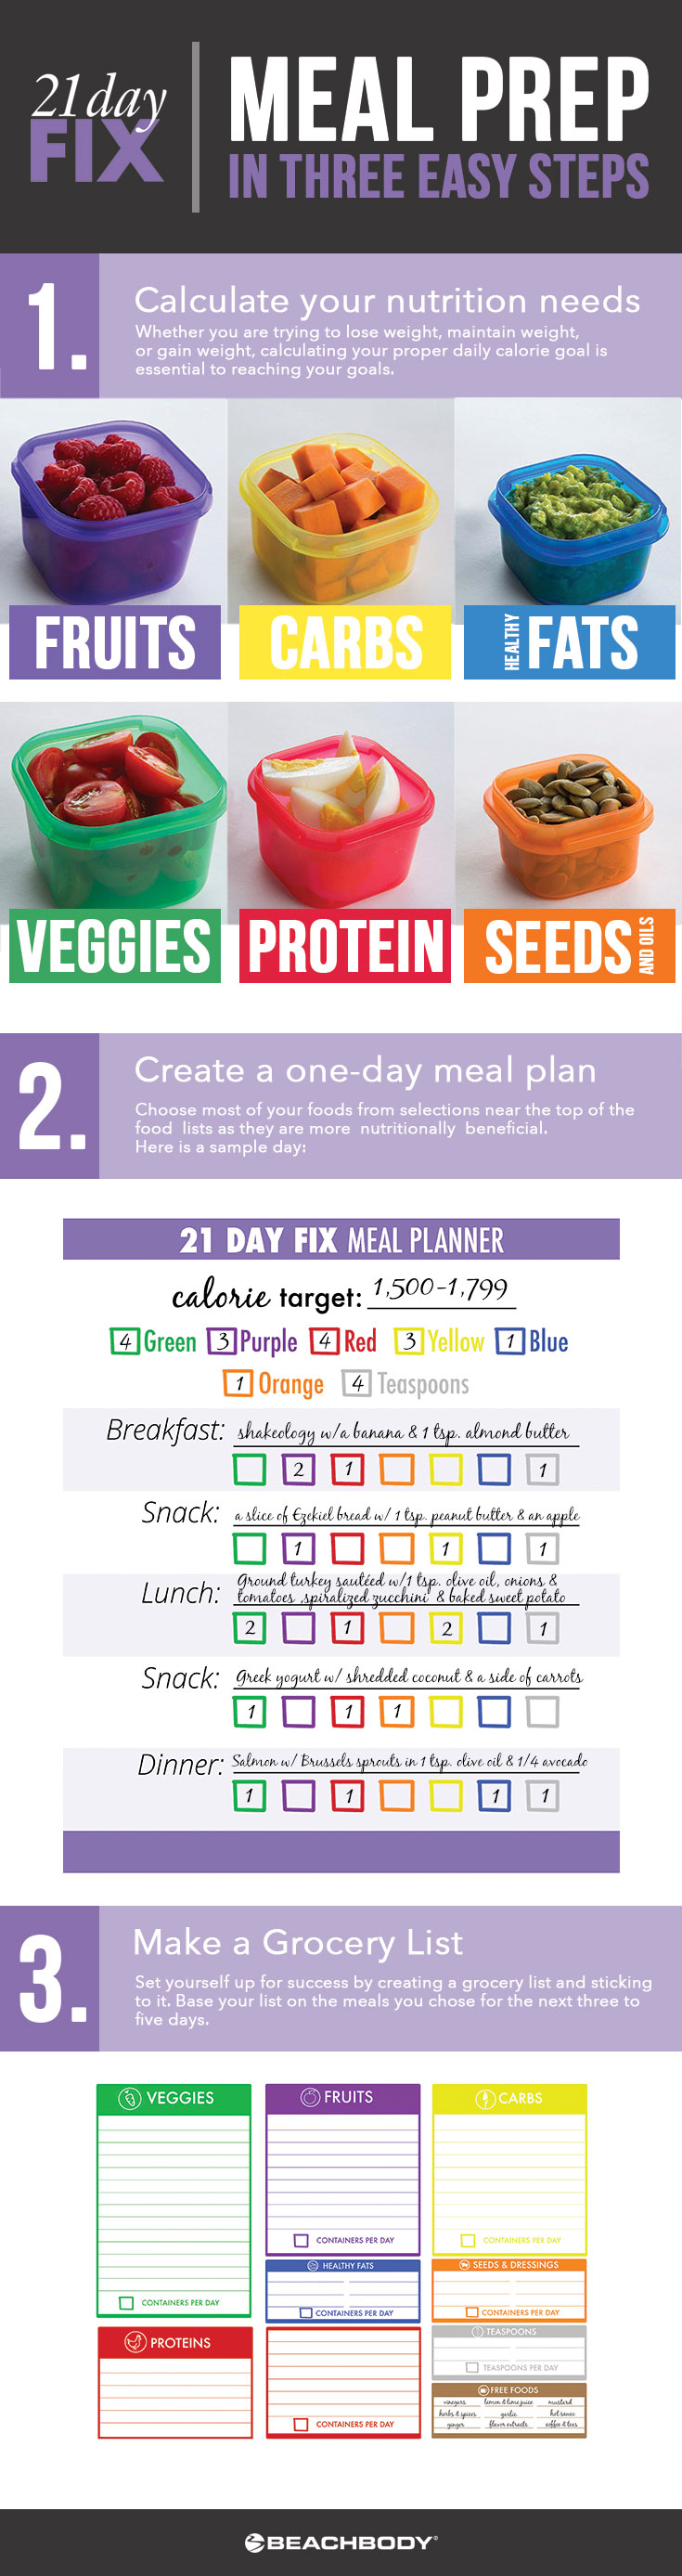 image about 21 Day Fix Meal Planner Printable identified as 3 Methods for Profitable 21 Working day Mend Evening meal Designing The